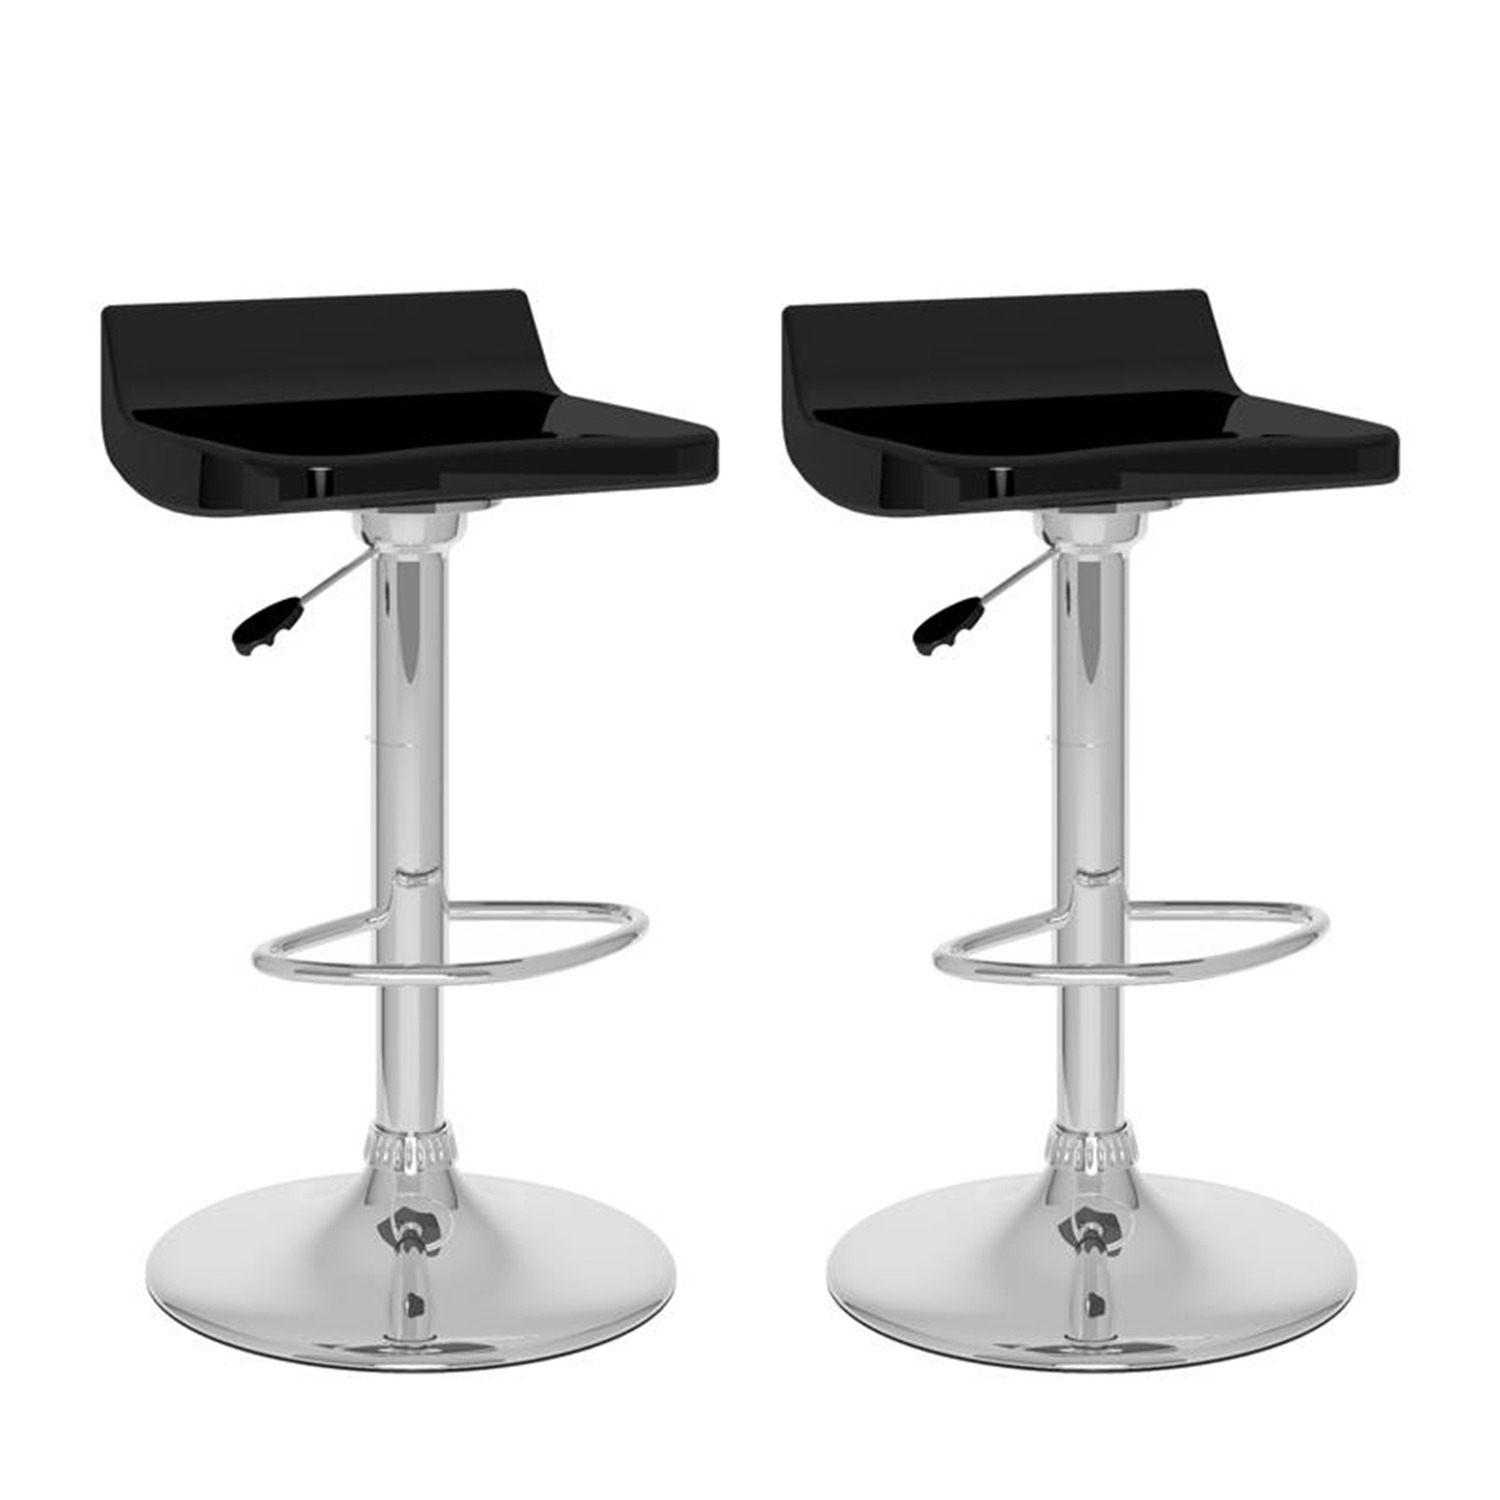 Sonax Corliving Low Back Adjustable Bar Stool Set Of 2 By